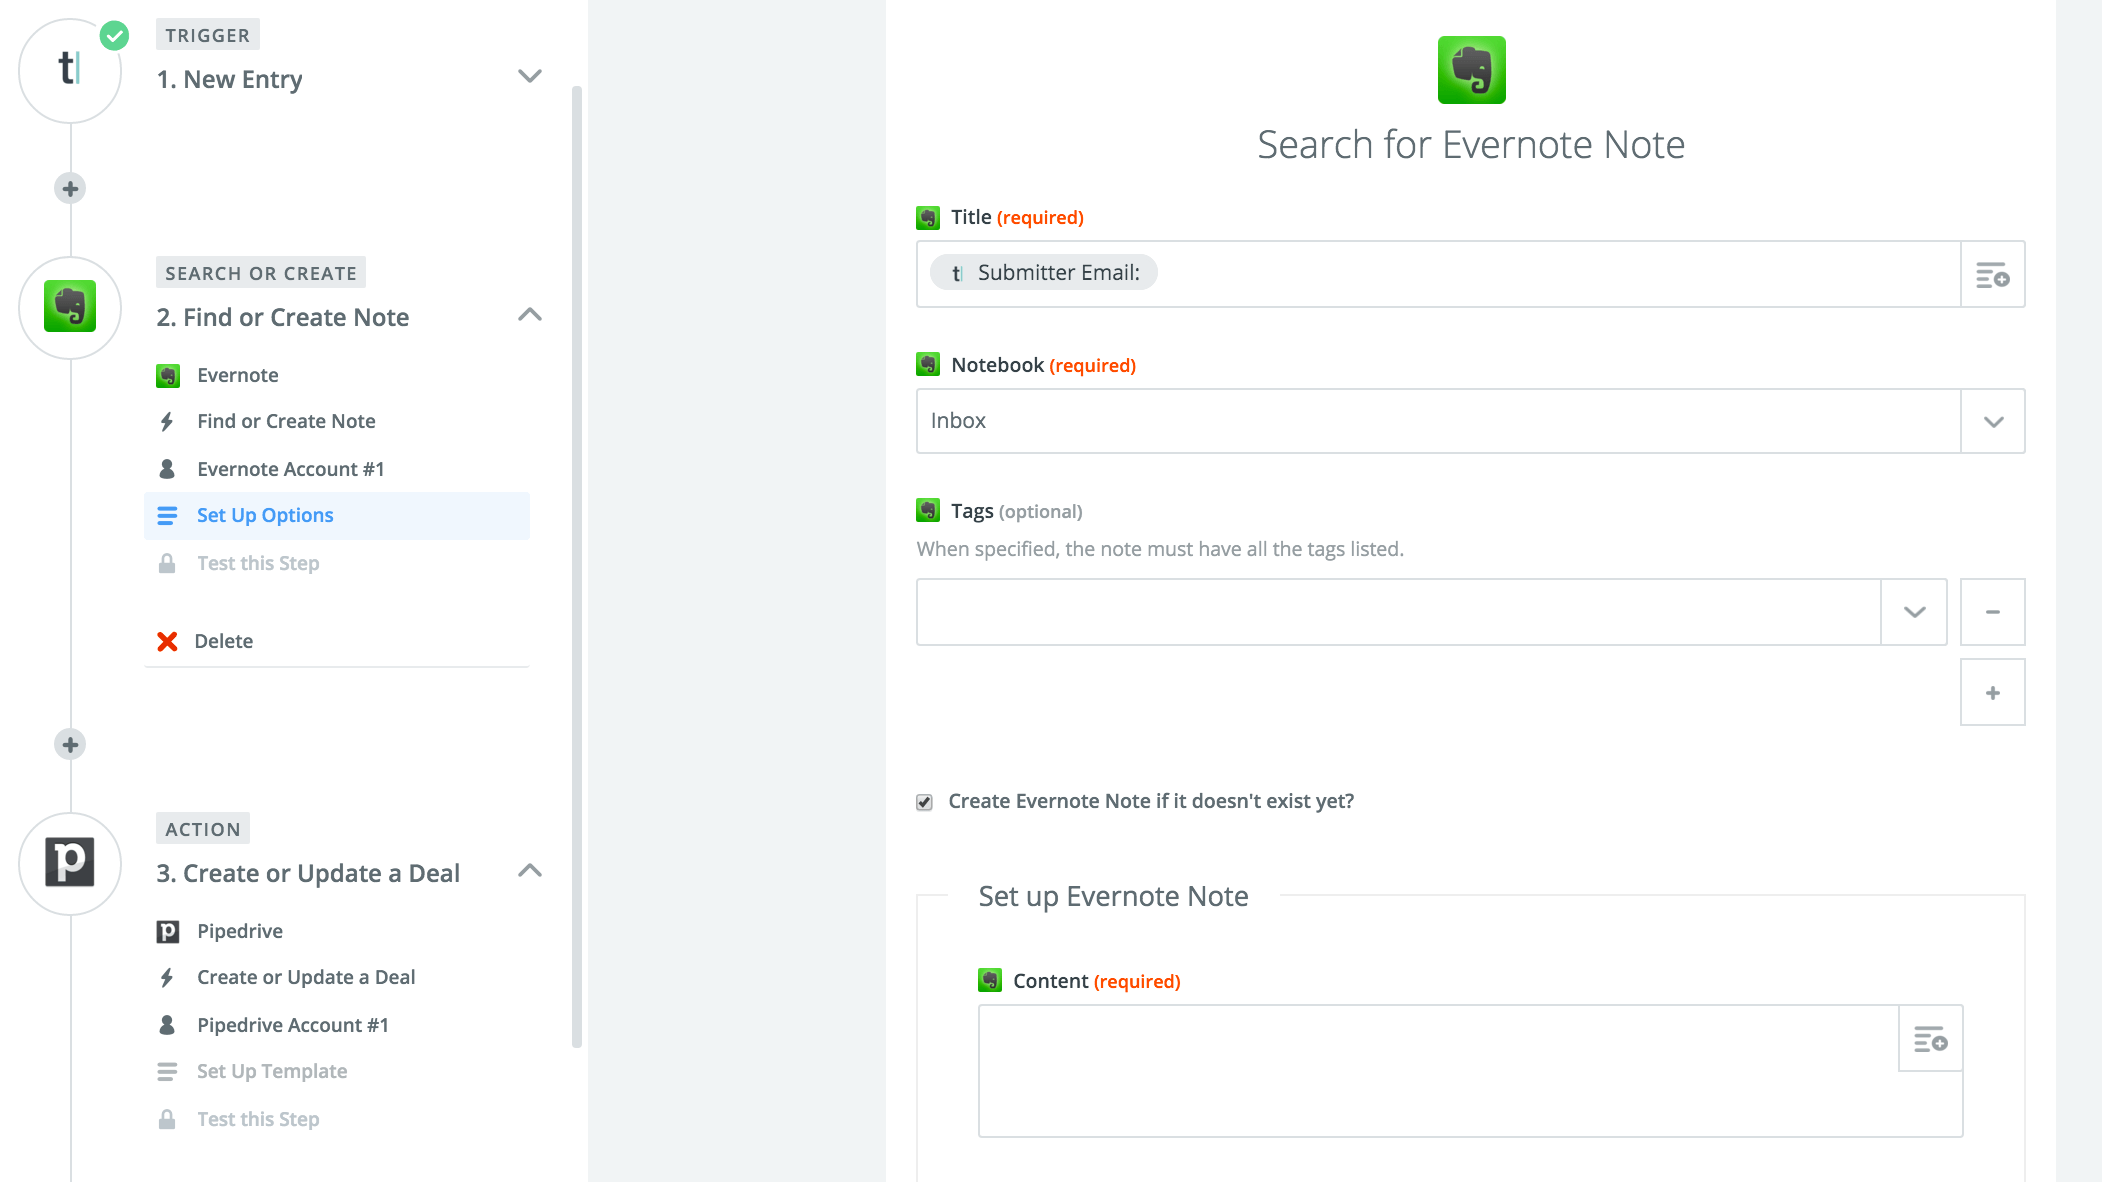 Zapier-Typeform-Evernote-Pipedrive